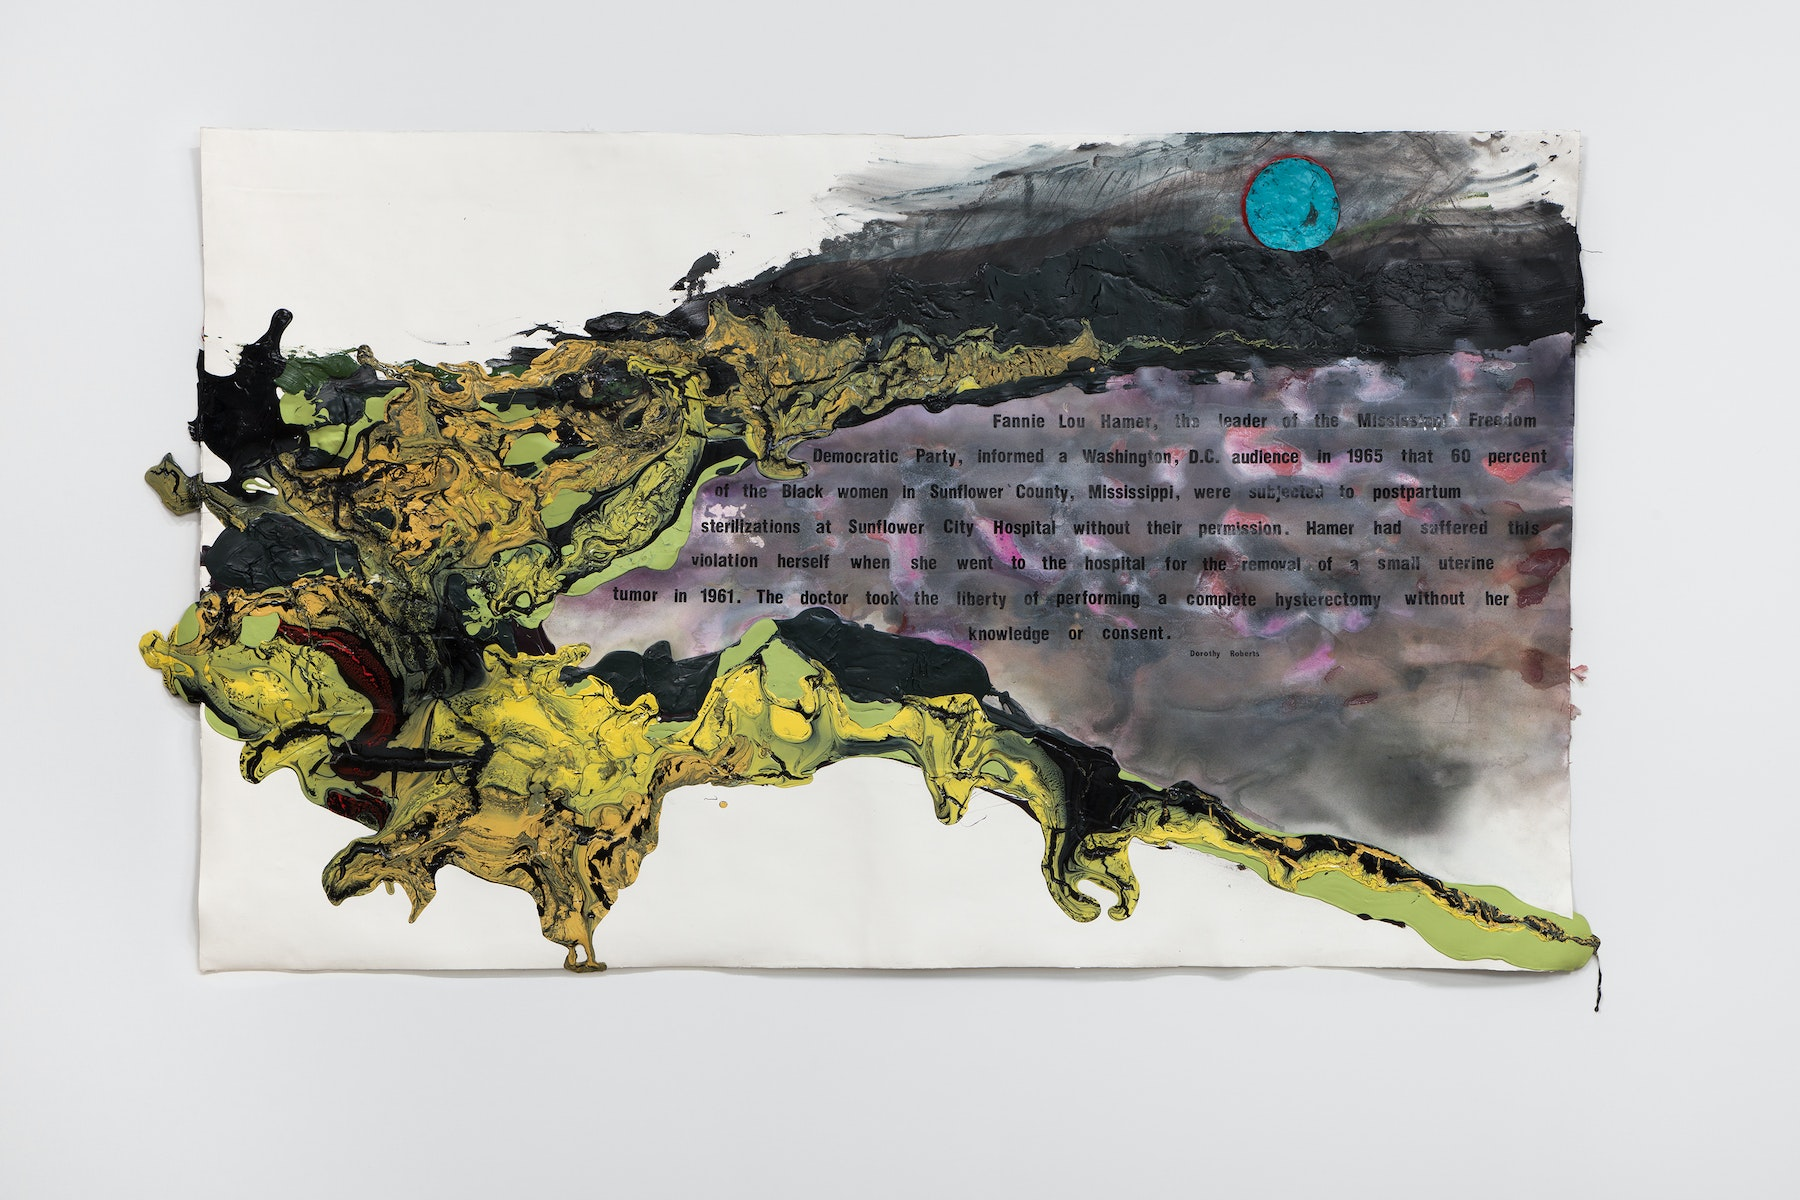 "Rodney McMillian ""Mississippi Appendectomy,"" 2020 Ink, acrylic, latex, and vinyl on paper mounted on canvas 53 x 90"" [HxW] (134.62 x 228.6 cm) Inventory #MCR405 Courtesy of the artist and Vielmetter Los Angeles Photo credit: Brica Wilcox"